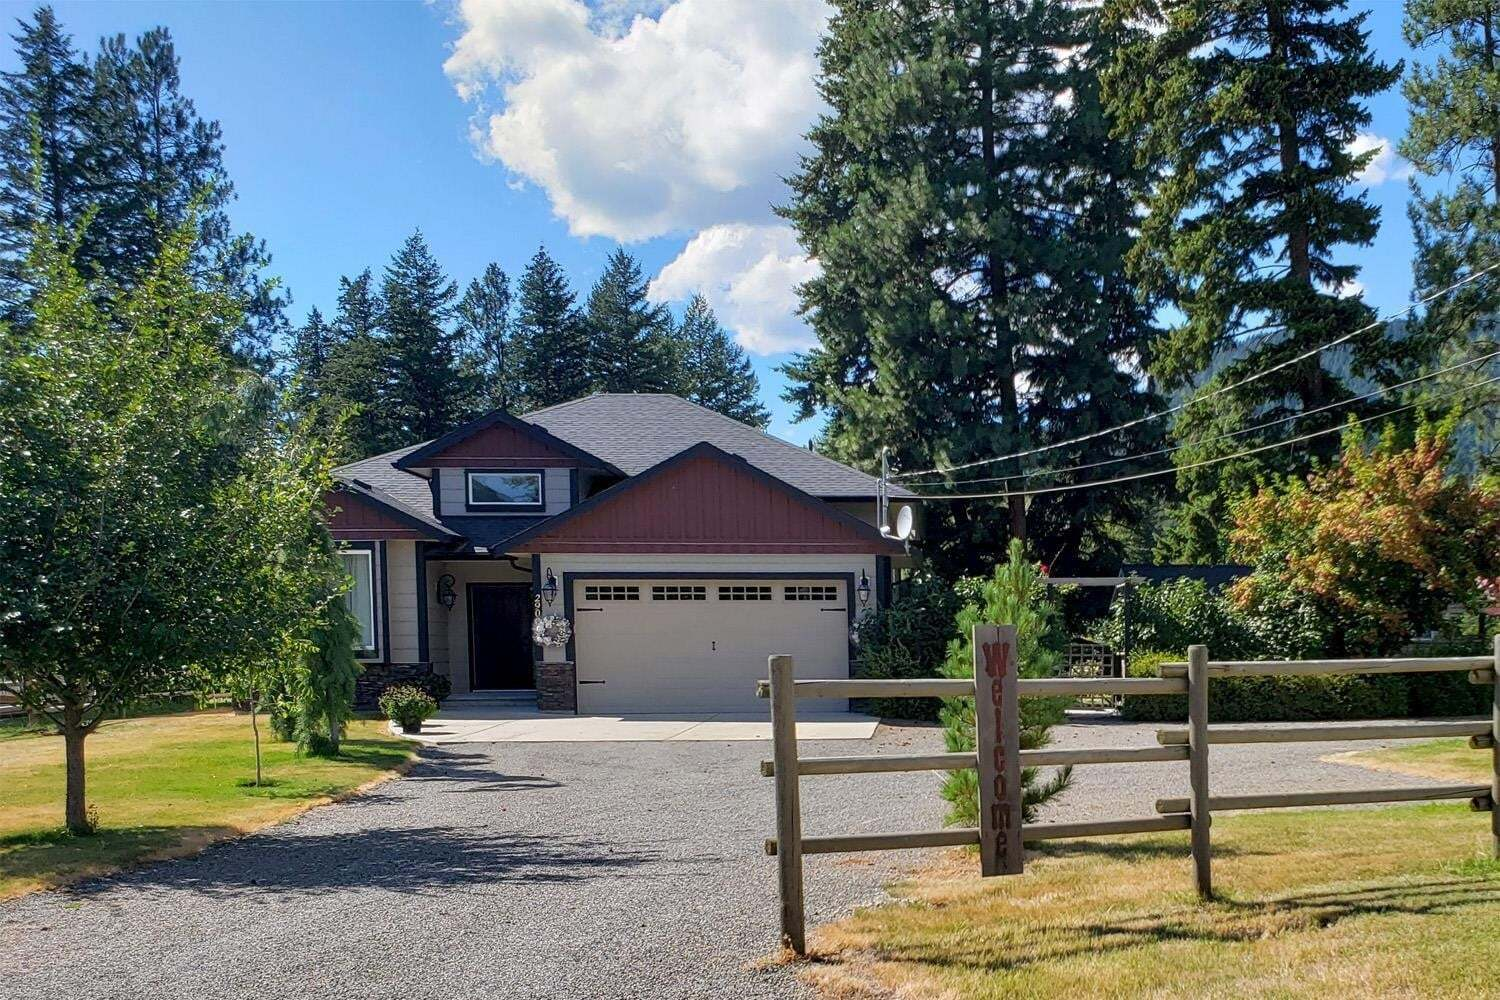 House for sale at 2900 Chase Falkland Rd Falkland British Columbia - MLS: 10214200